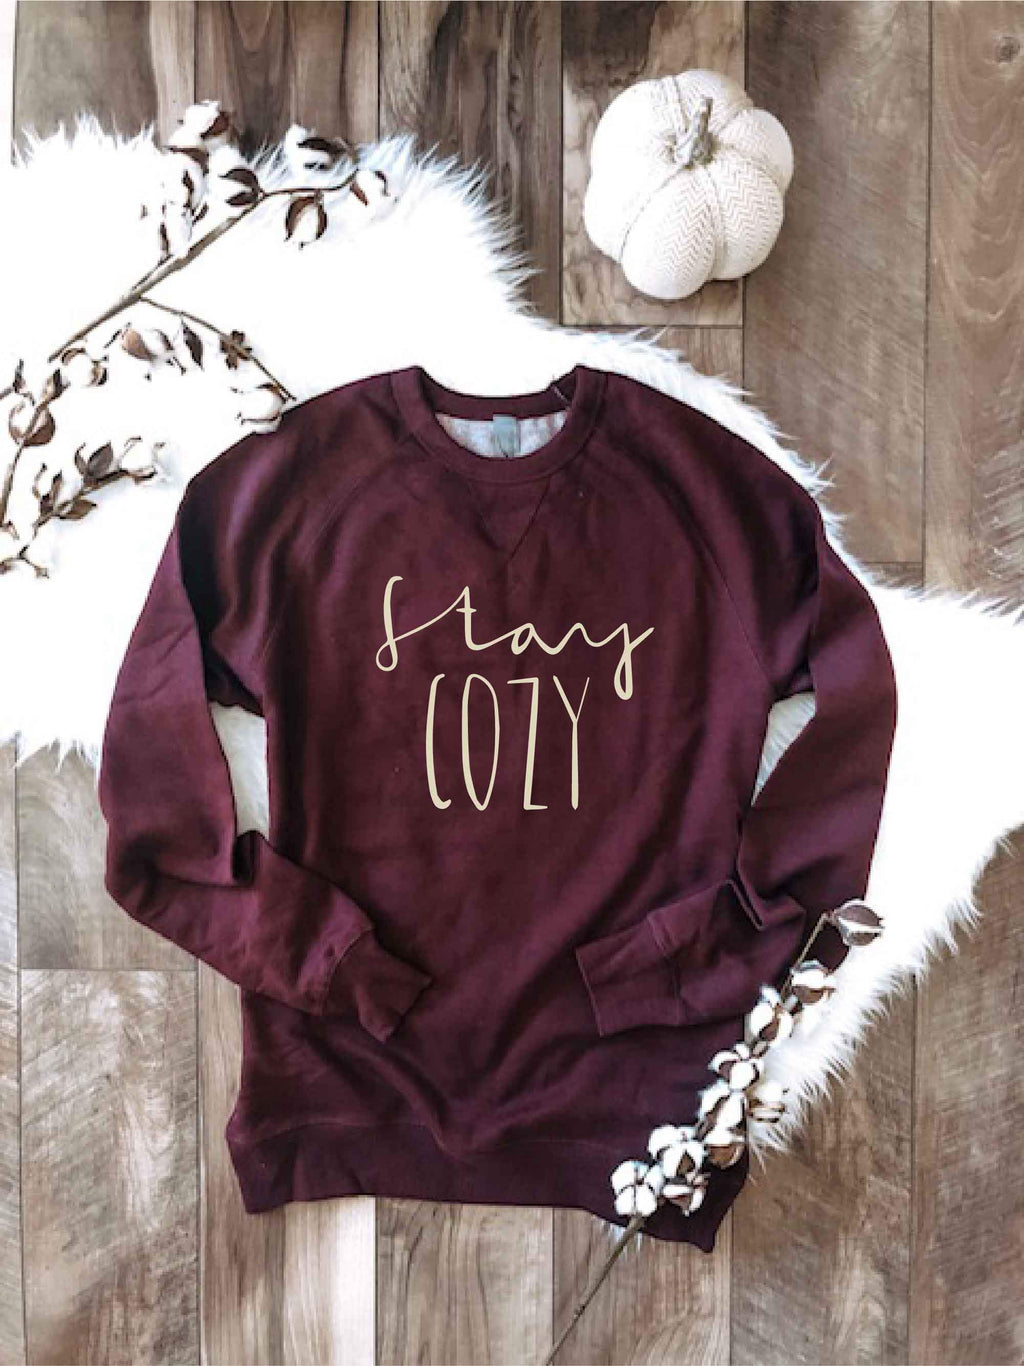 Stay cozy french terry raglan-several color options Fall French Terry raglan Lane seven and cotton heritage French Terry raglans XS Maroon